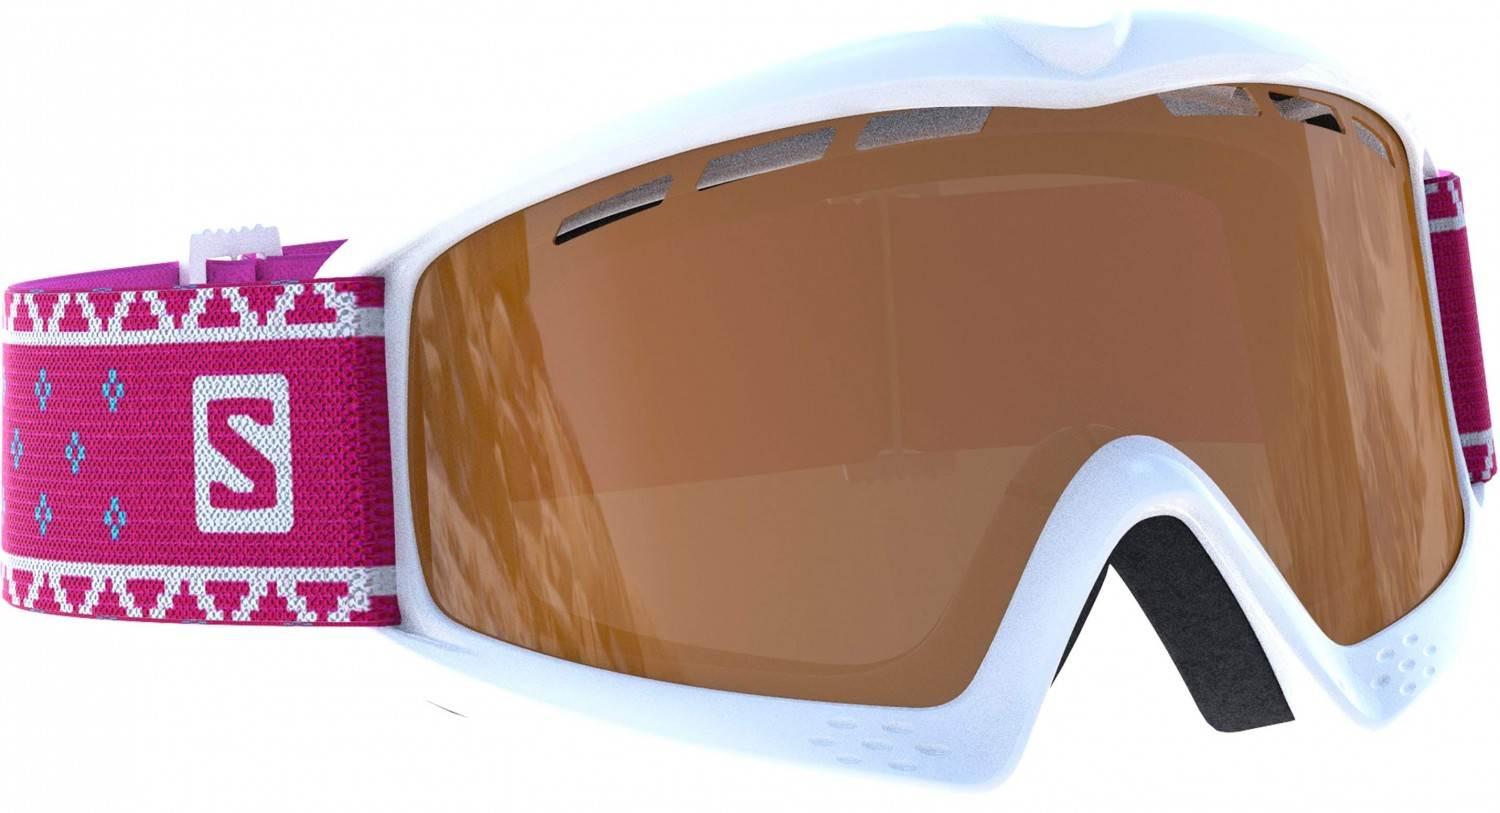 Salomon Kiwi Access Kinderskibrille (Farbe white, Scheibe universal tonic orange)